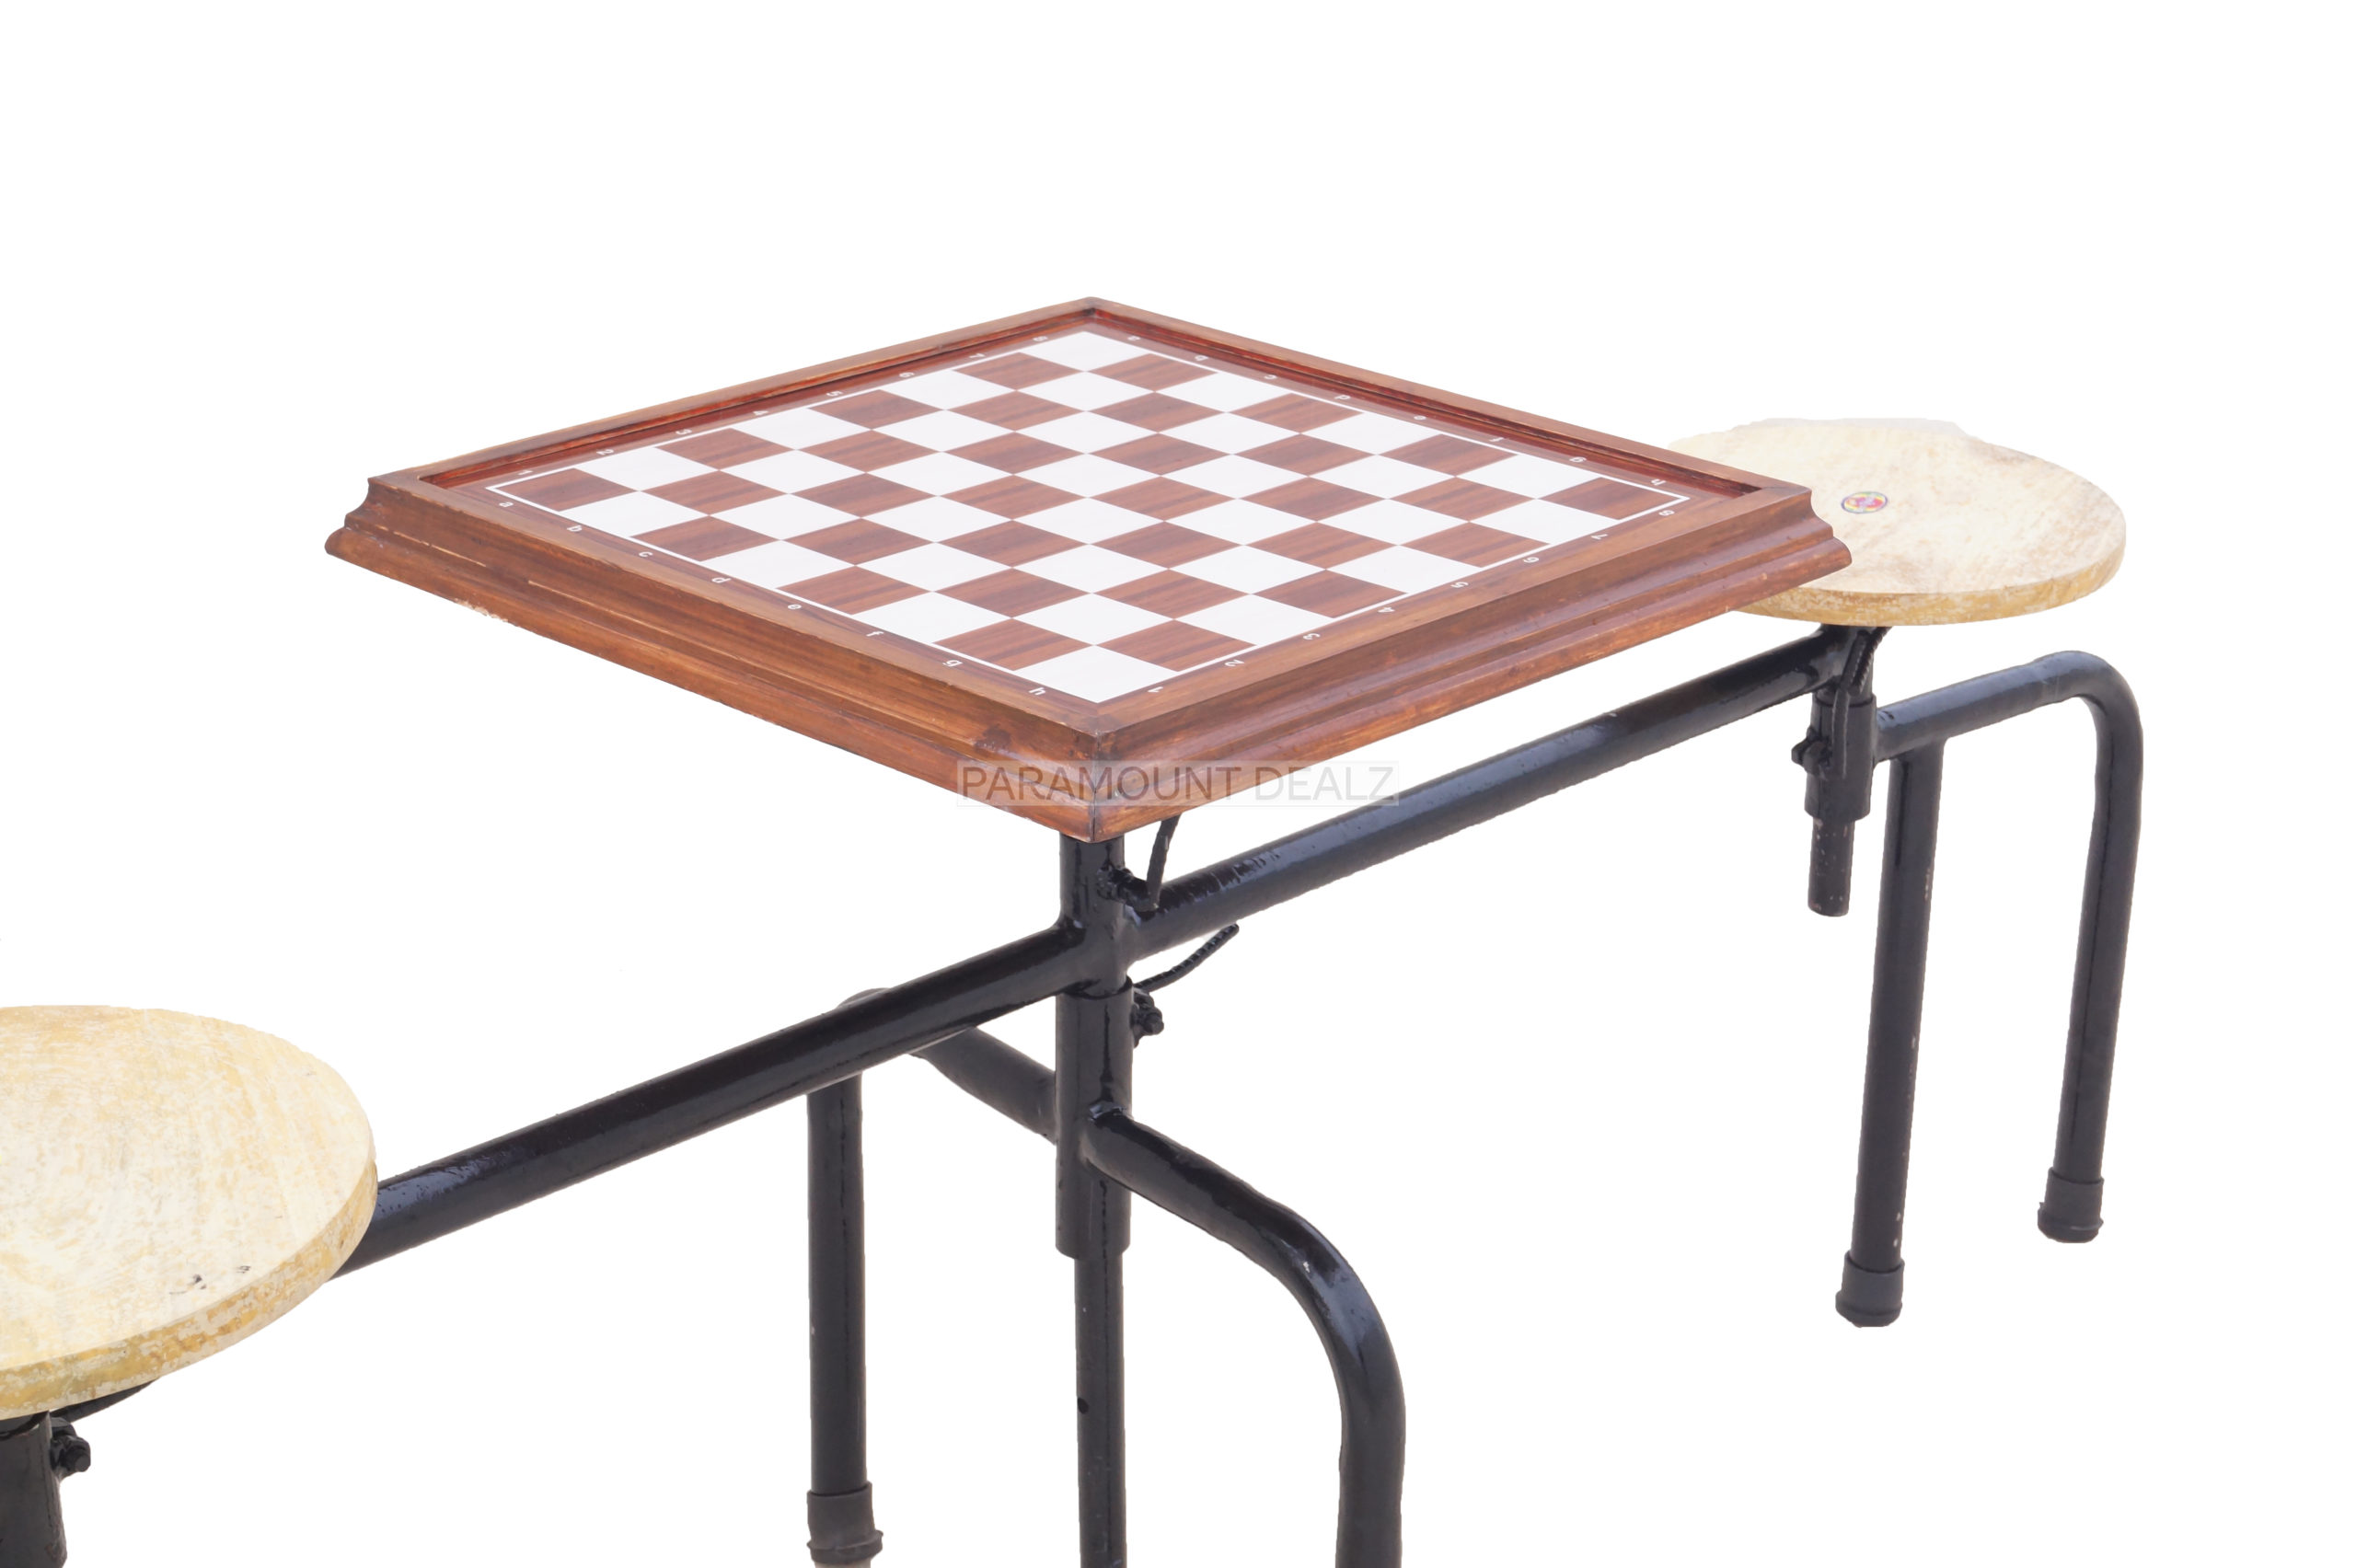 Queen's Gambit Metallic Premium Chess Table with 2 attached stools